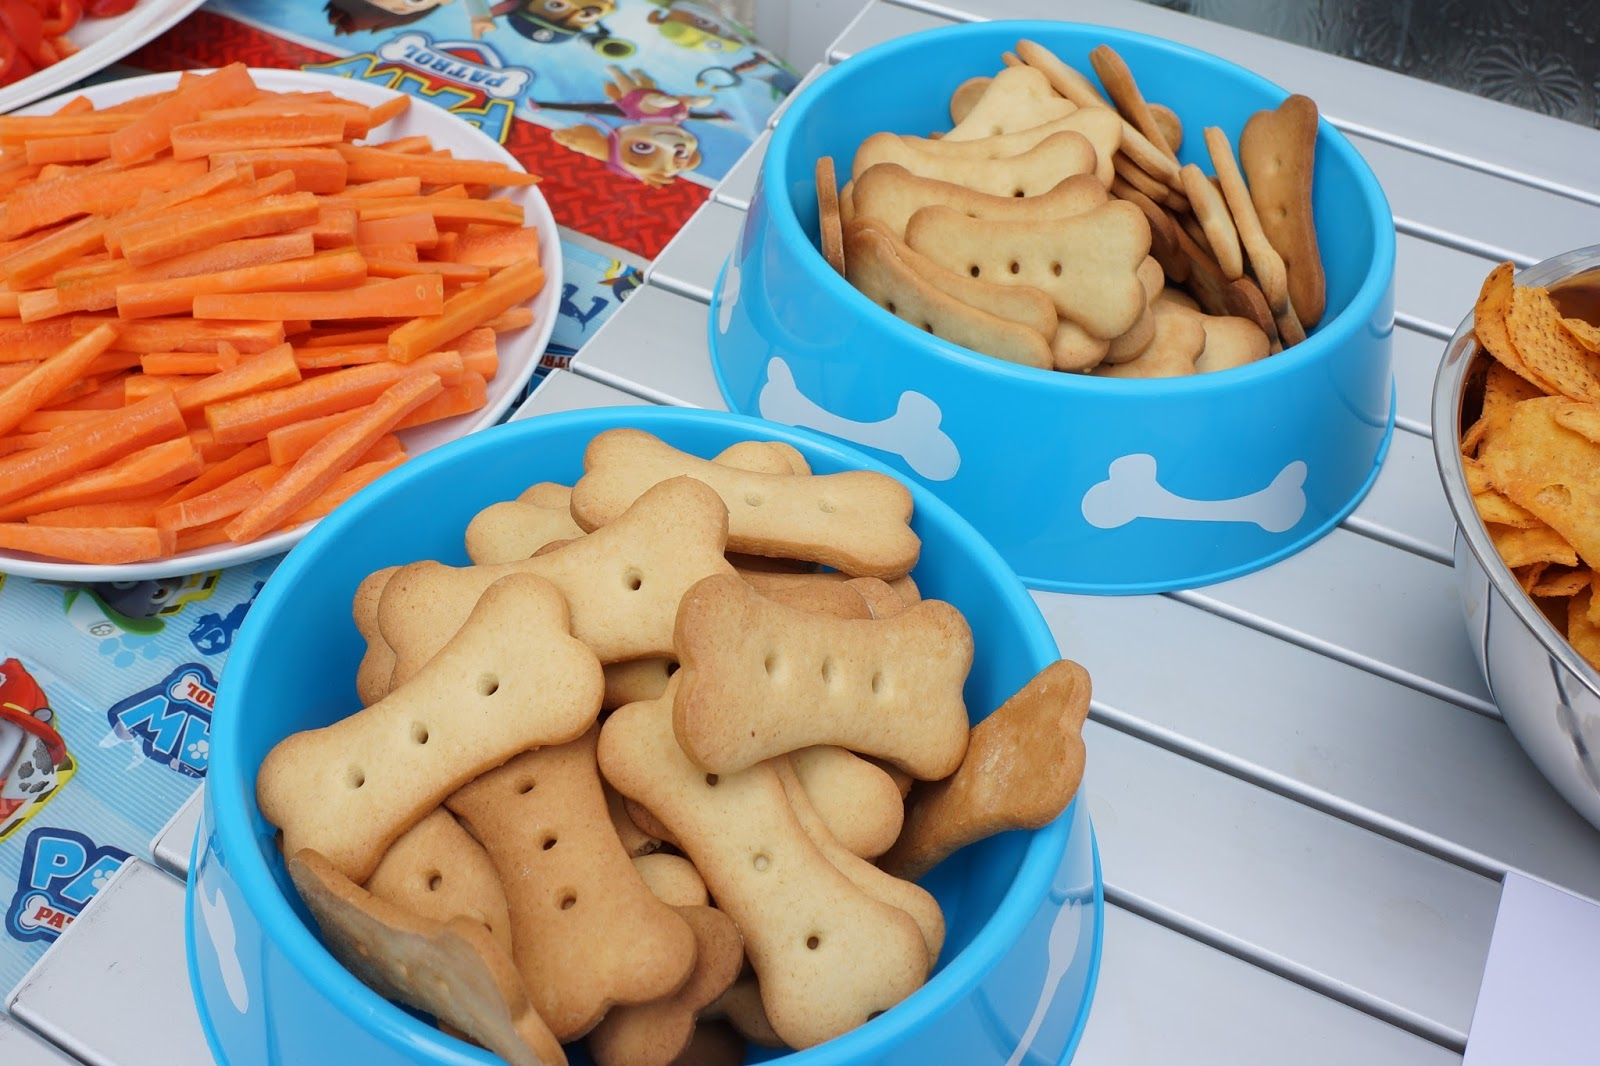 paw patrol honey biscuits in a dog bowl